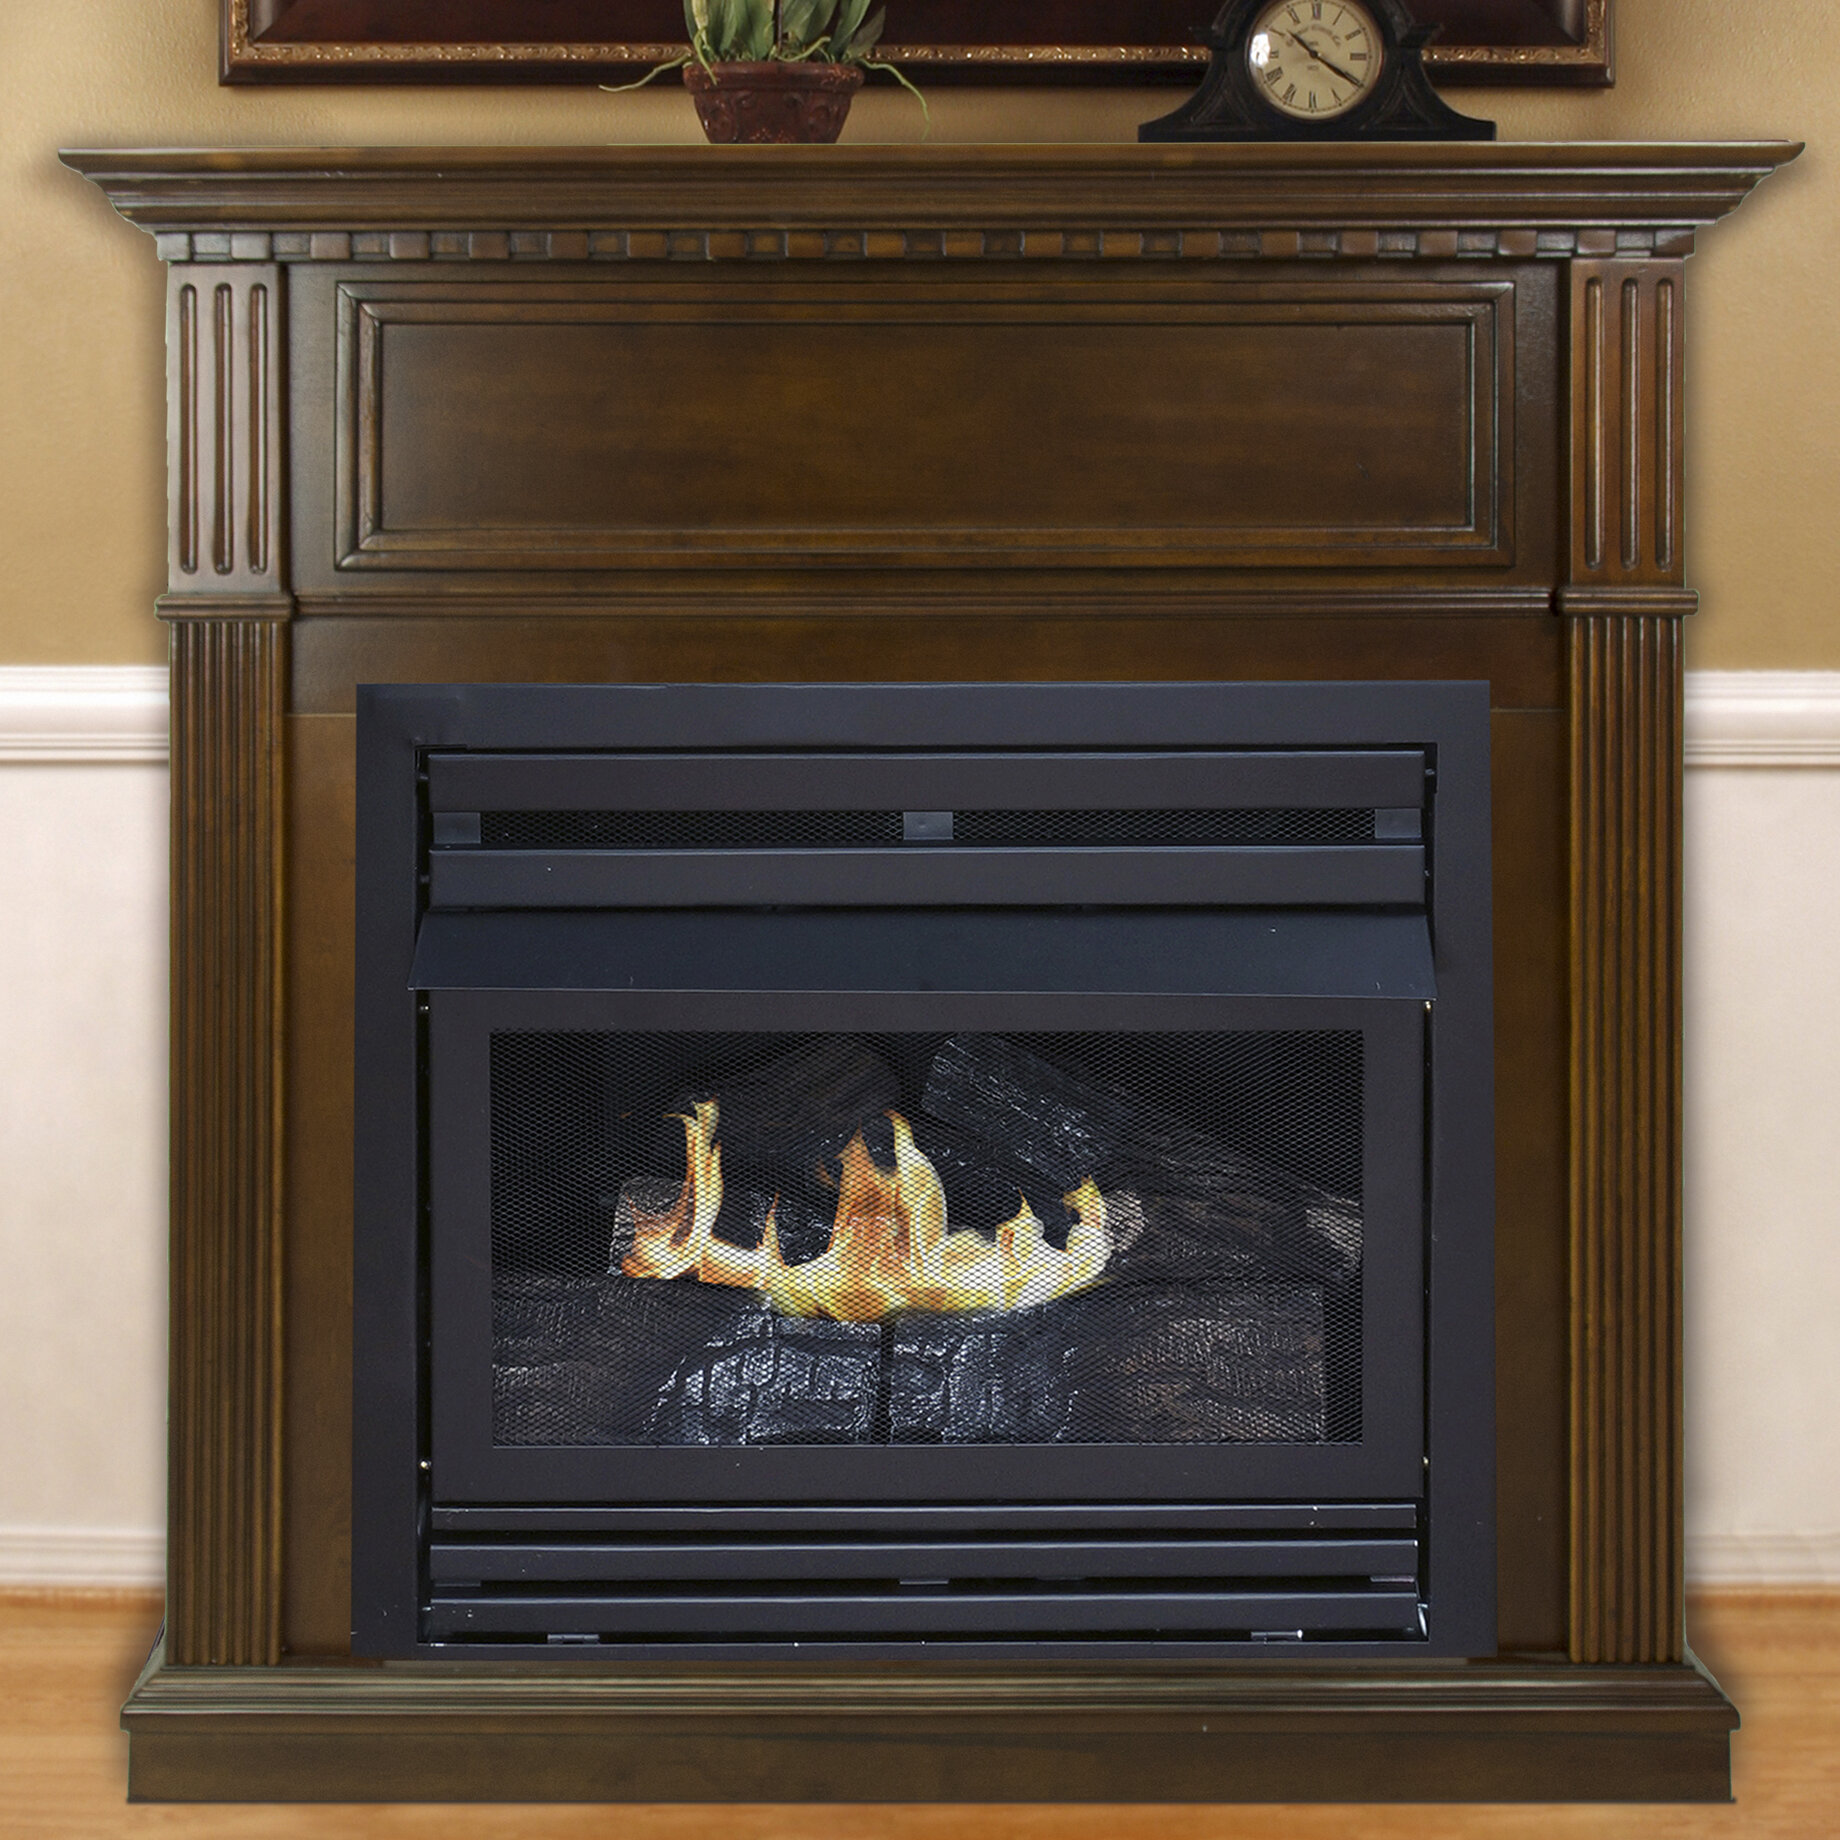 Darby home co shawnda vent free natural gas fireplace wayfair